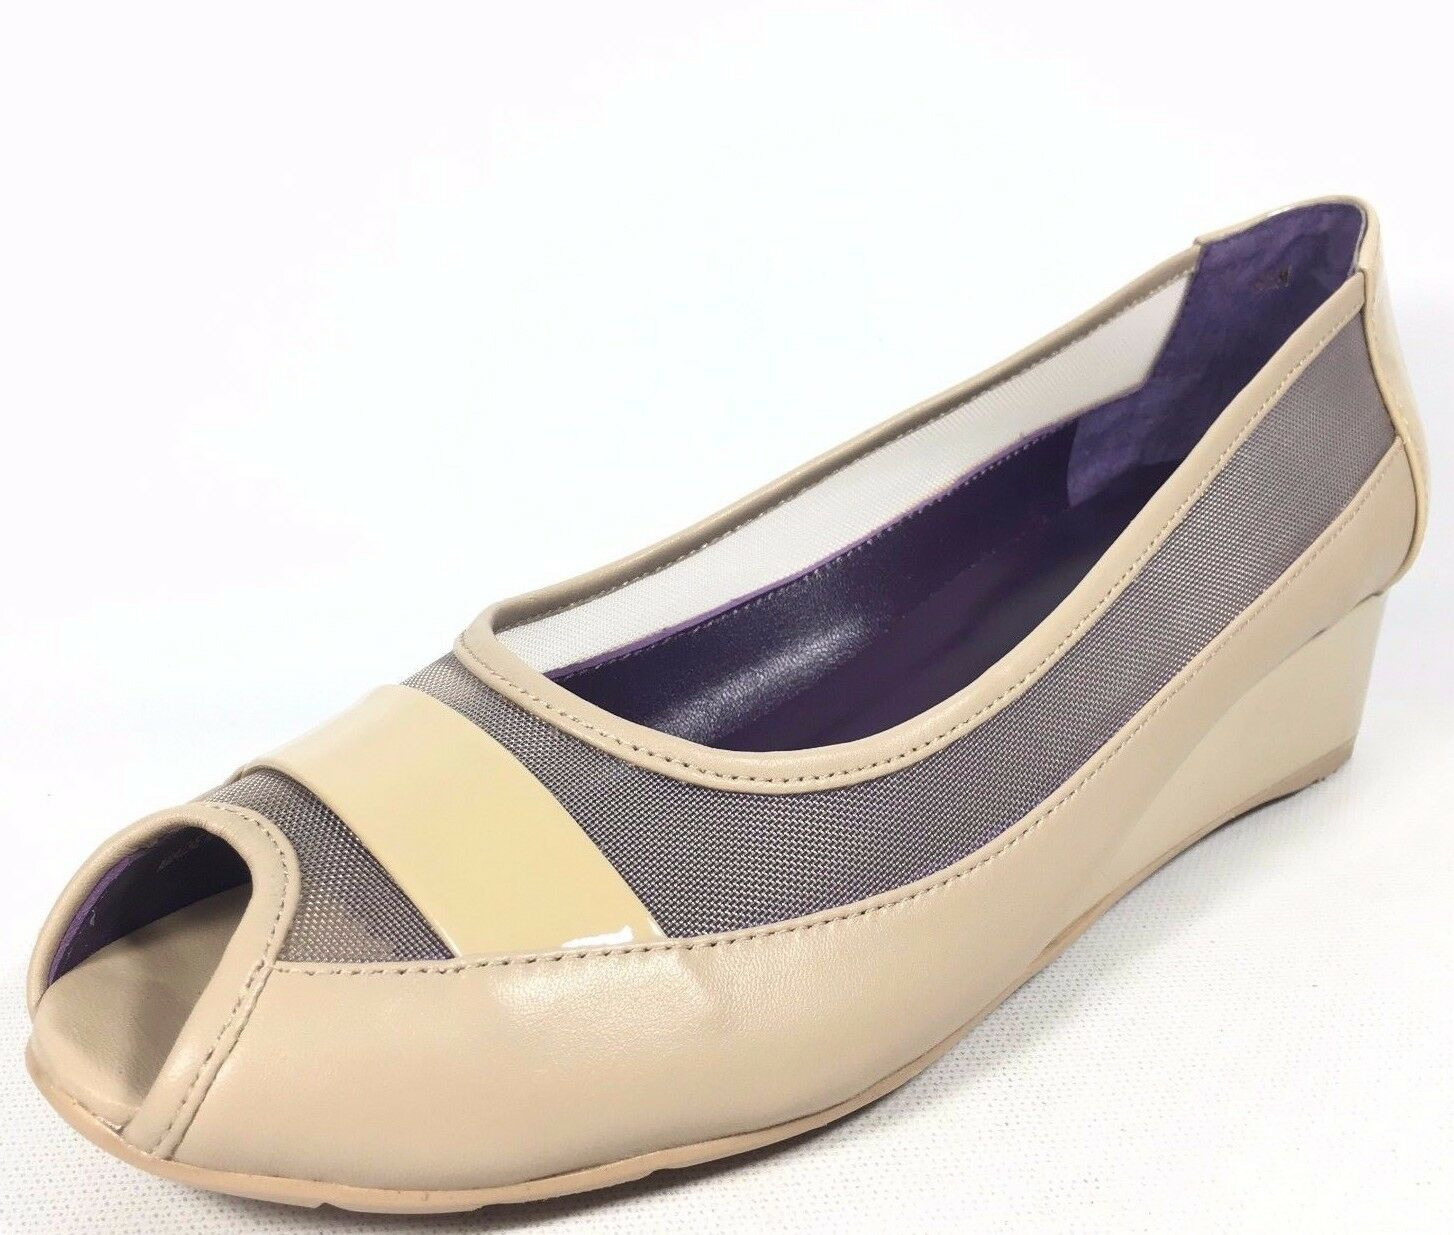 VANELi Purple Collection Valeka Damenschuhe Beige Patent Mesh Peep Toe Sandale Wedge